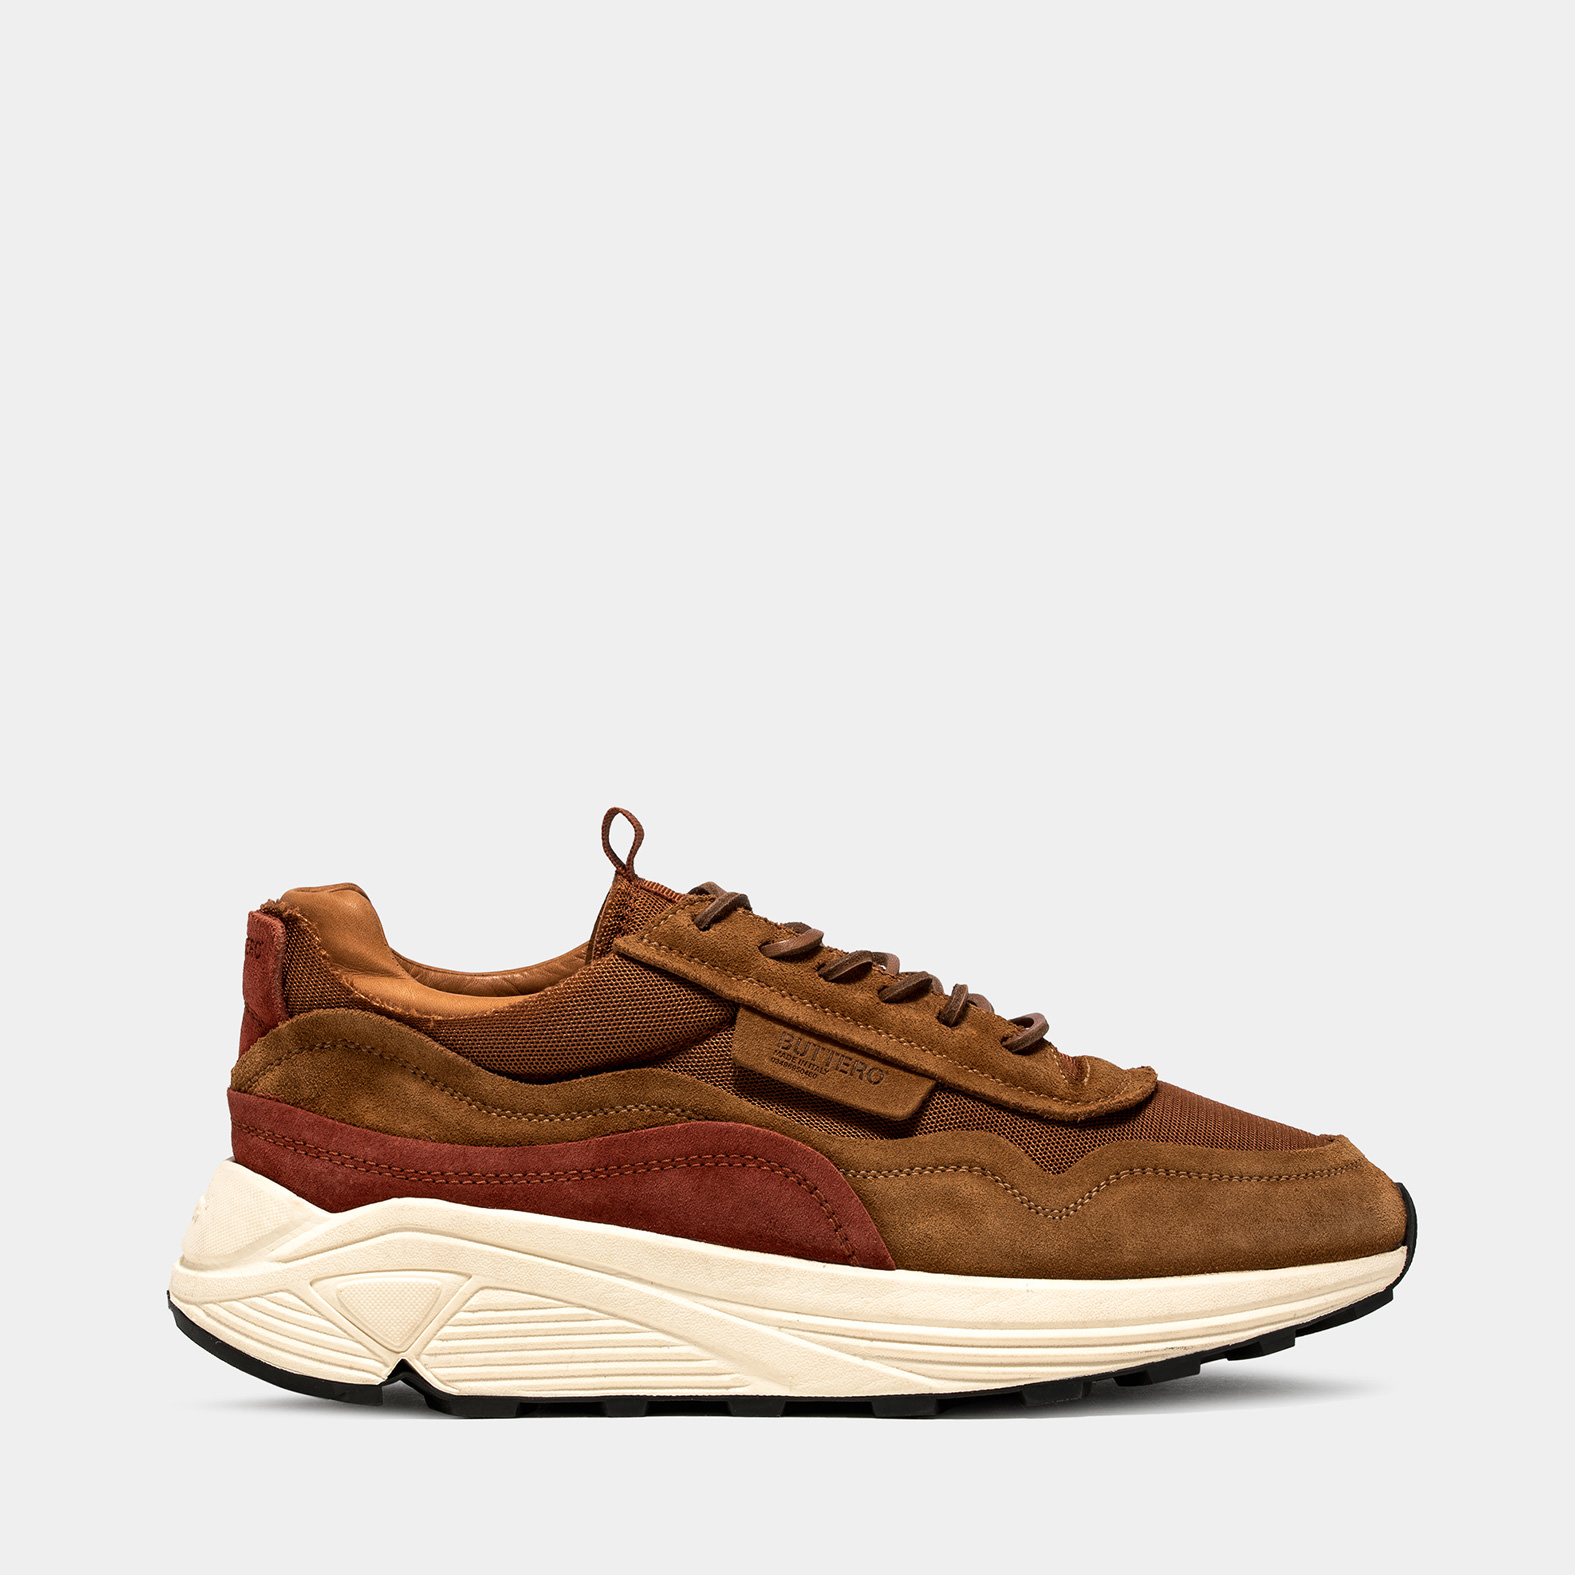 BUTTERO: VINCI SNEAKERS IN SIENNA NYLON MESH AND SUEDE